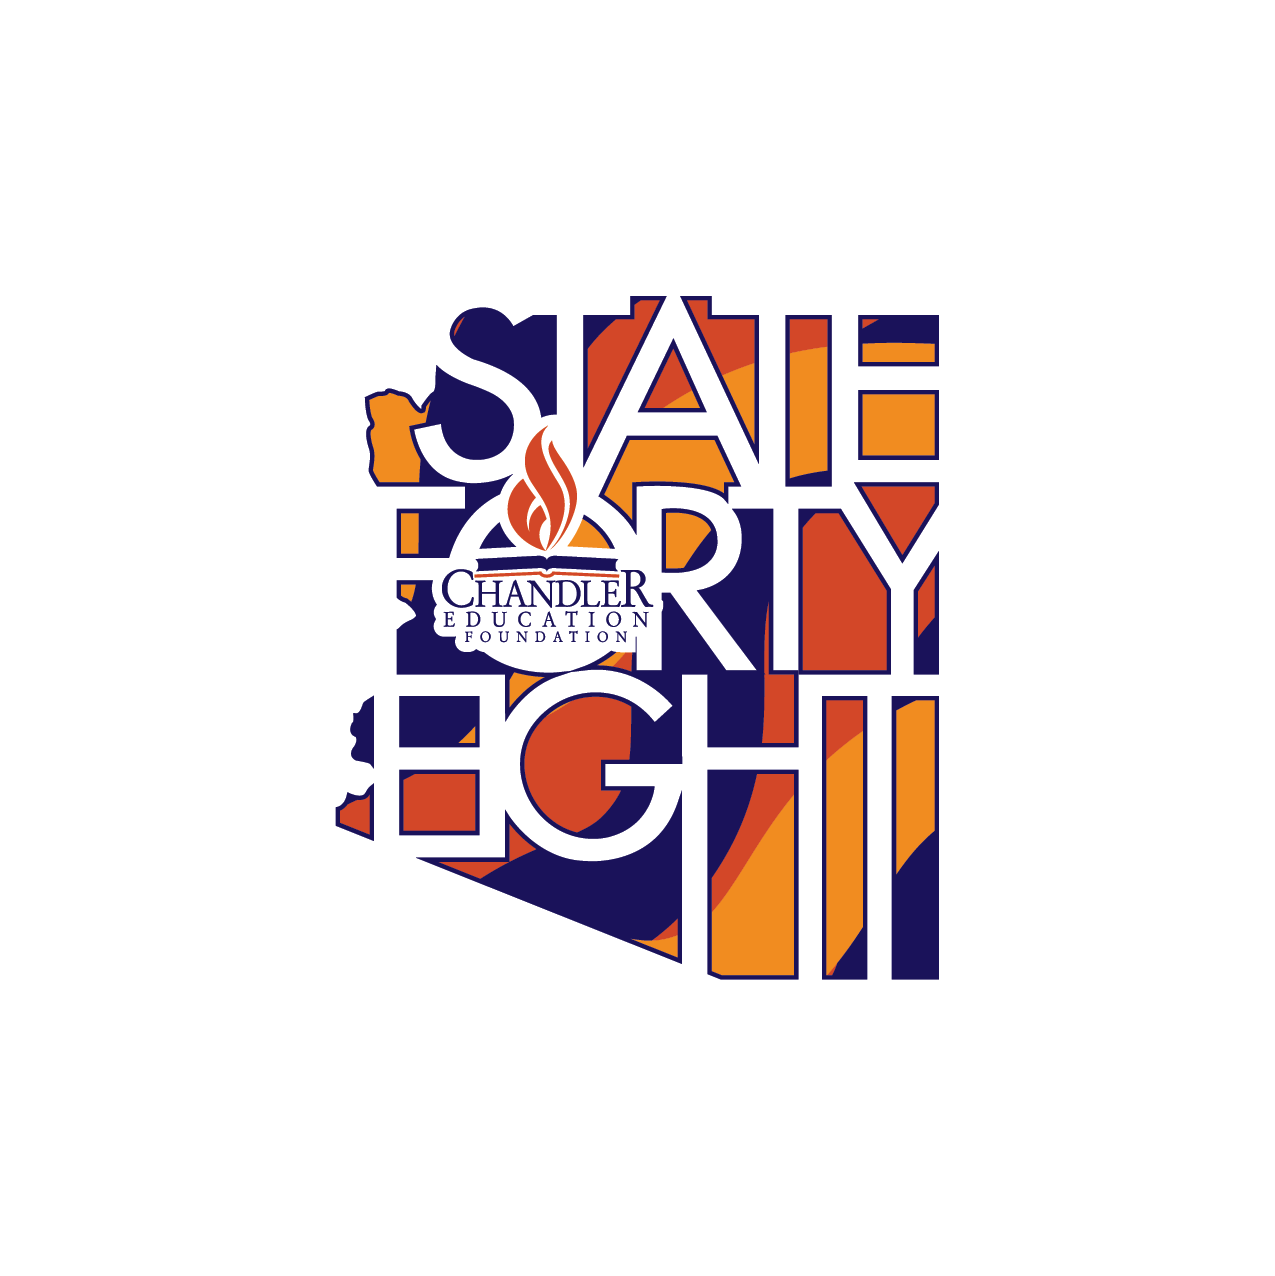 State Forty Eight Image